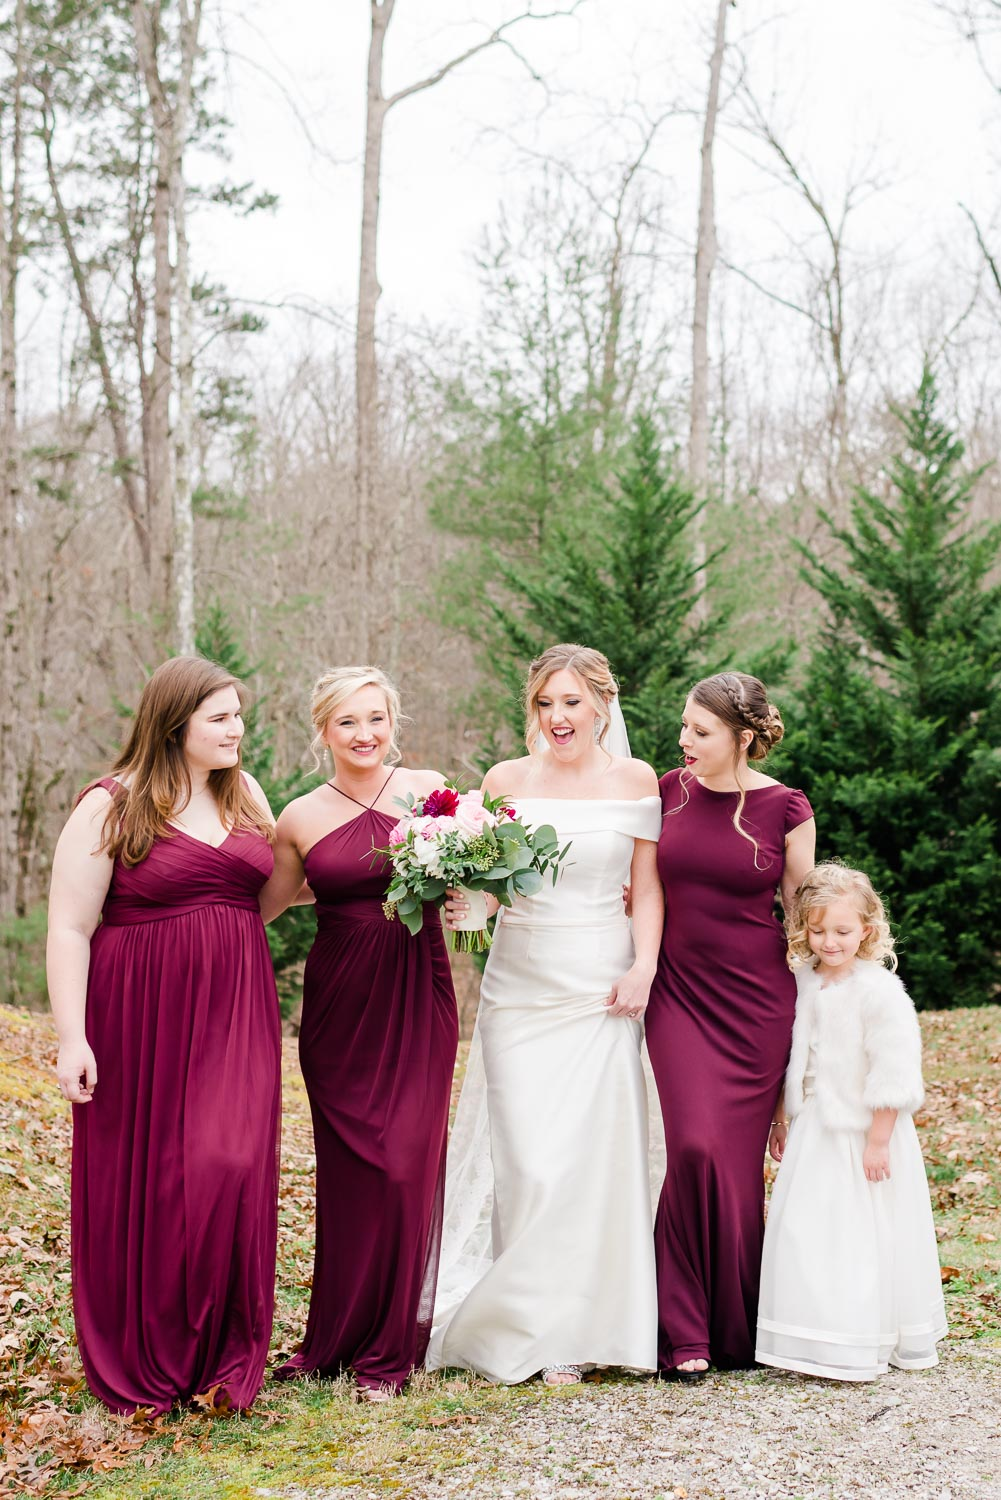 bridesmaids and bride wearing burgundy dresses and flower girl in white fur jacket.